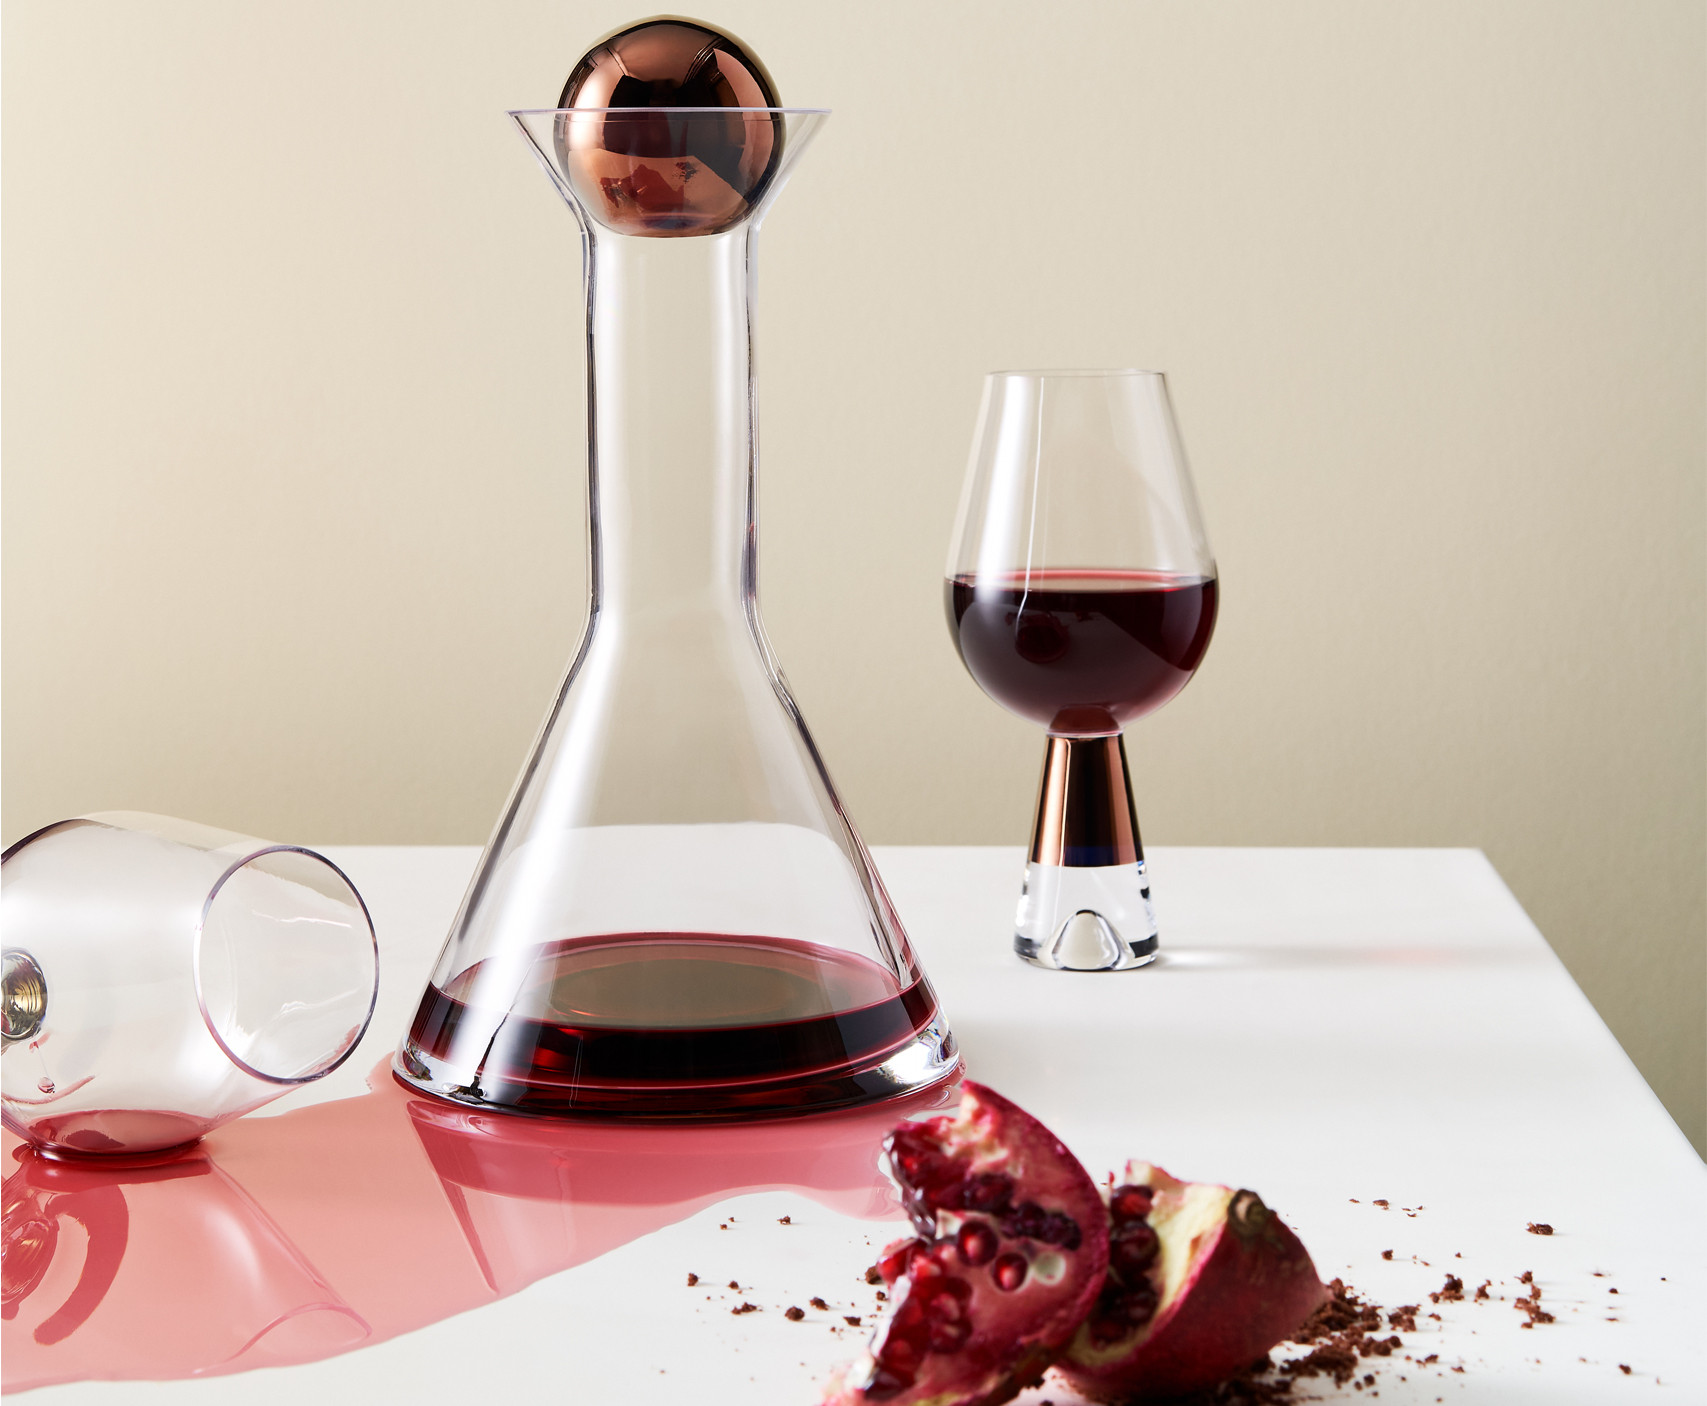 Tank Wine Glasses and Decanter